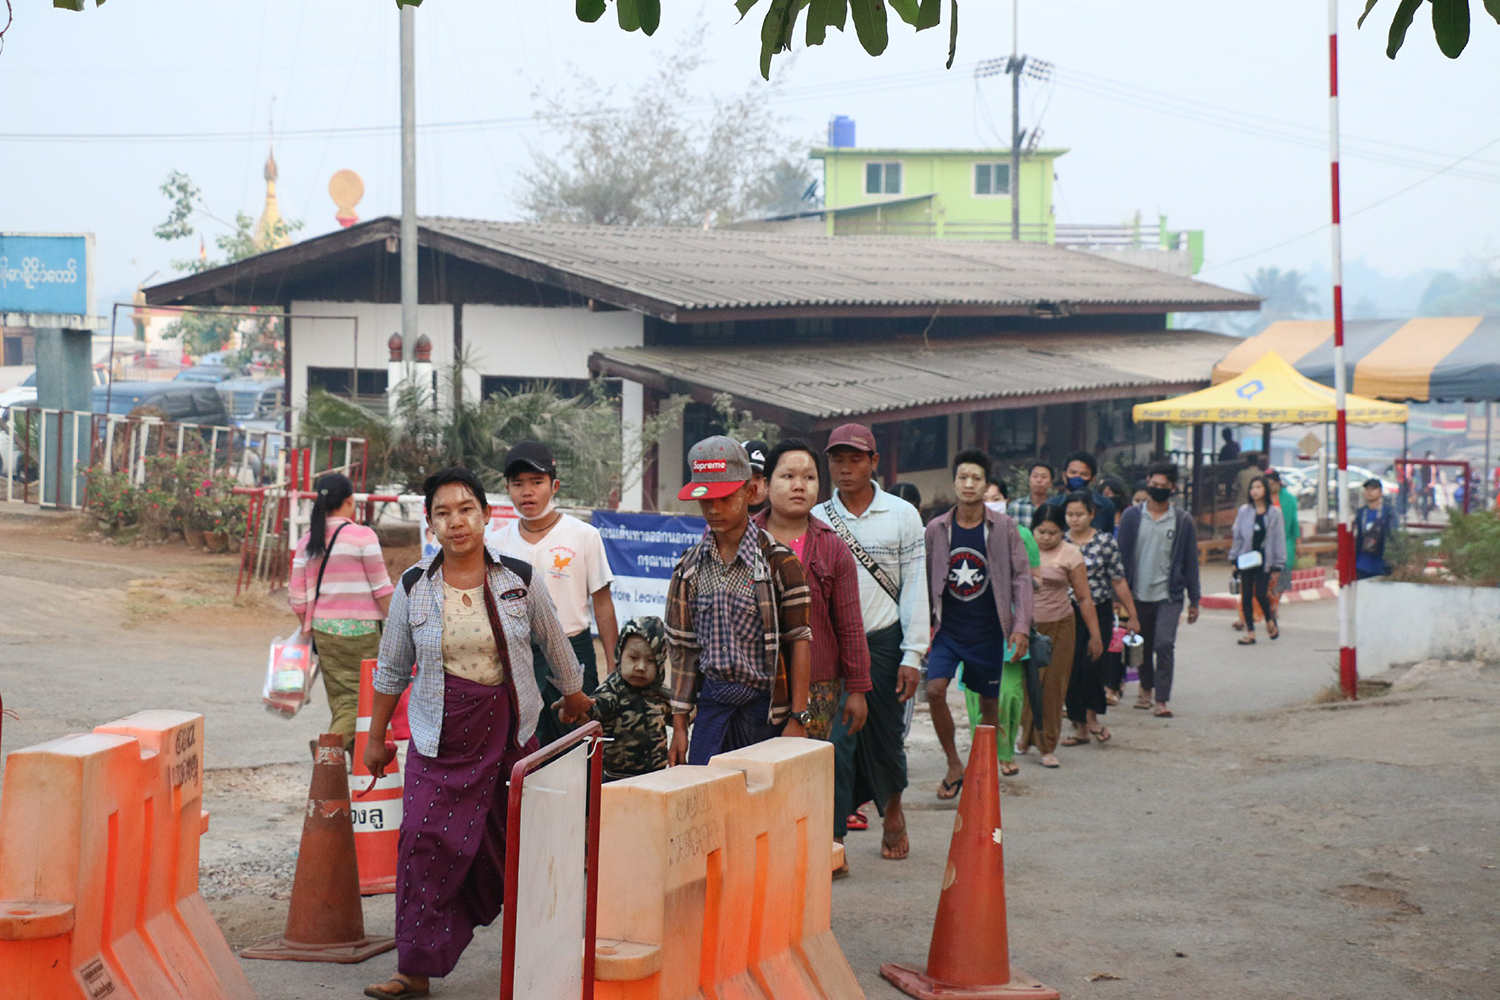 Myanamar nationals cross through the Three Pagodas pass checkpoint to Sangkhla Buri district in Kanchanaburi on Friday before it closes starting from Saturday. (Photo by Piyarach Chongcharoen)